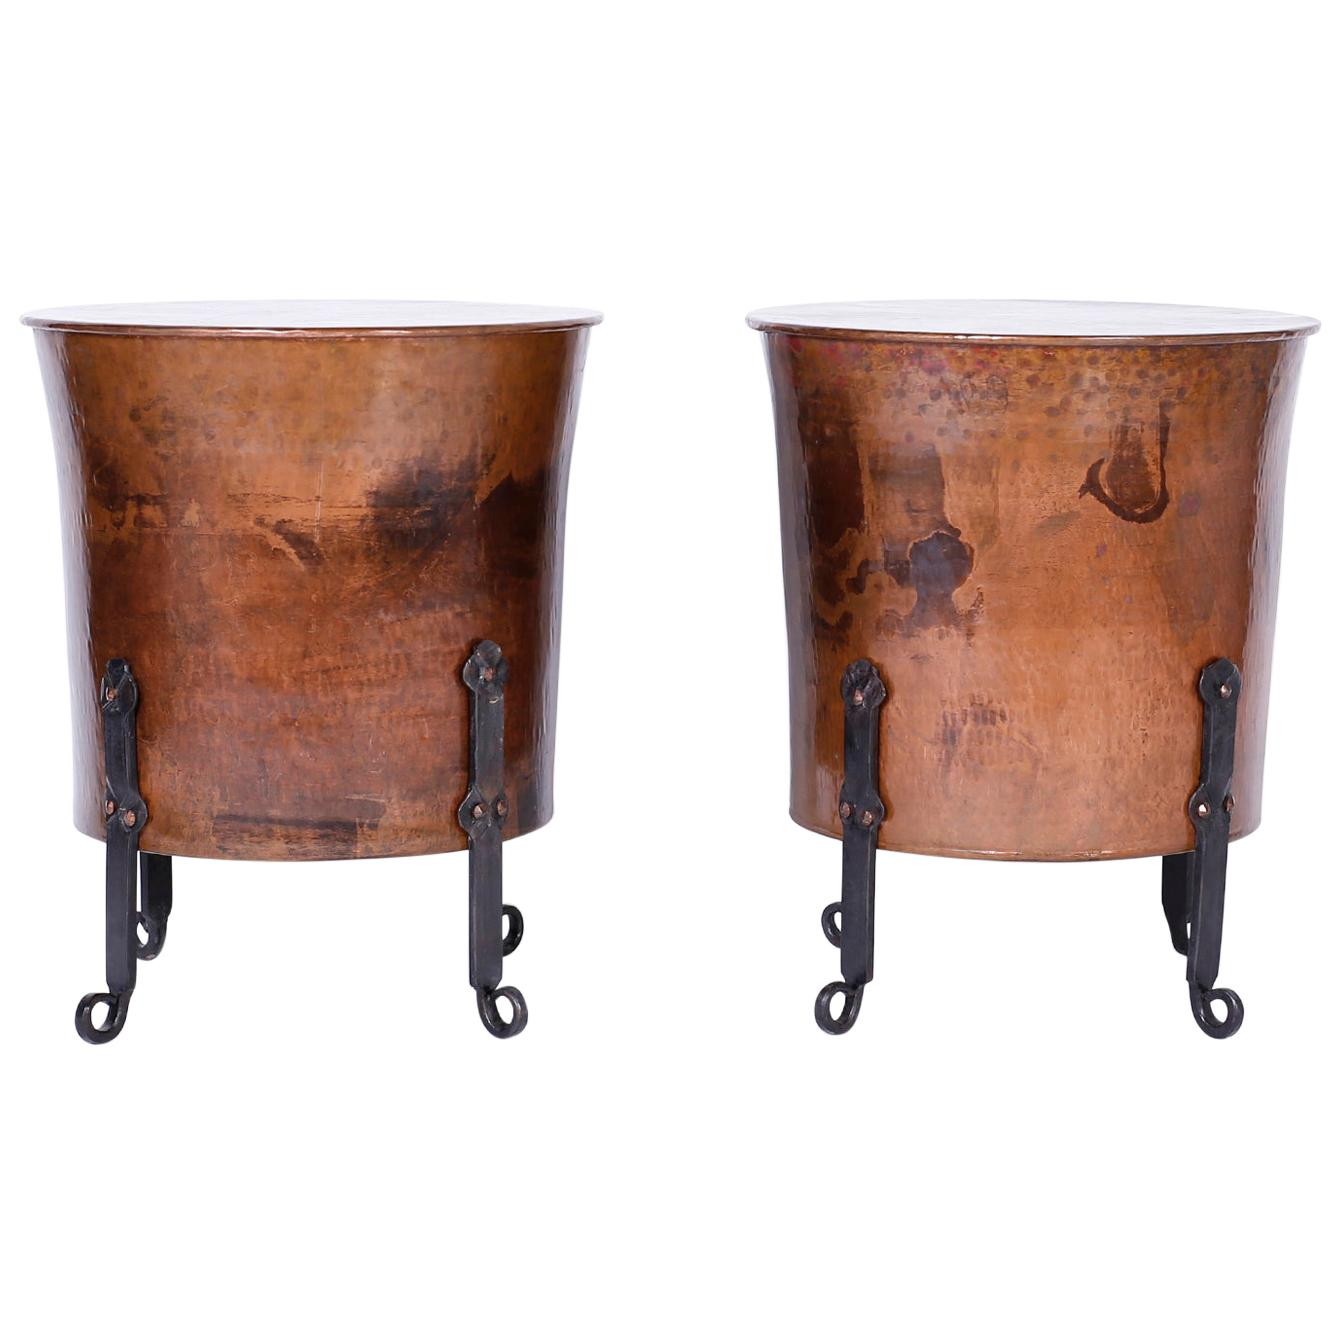 Pair of French Copper End Tables or Stands